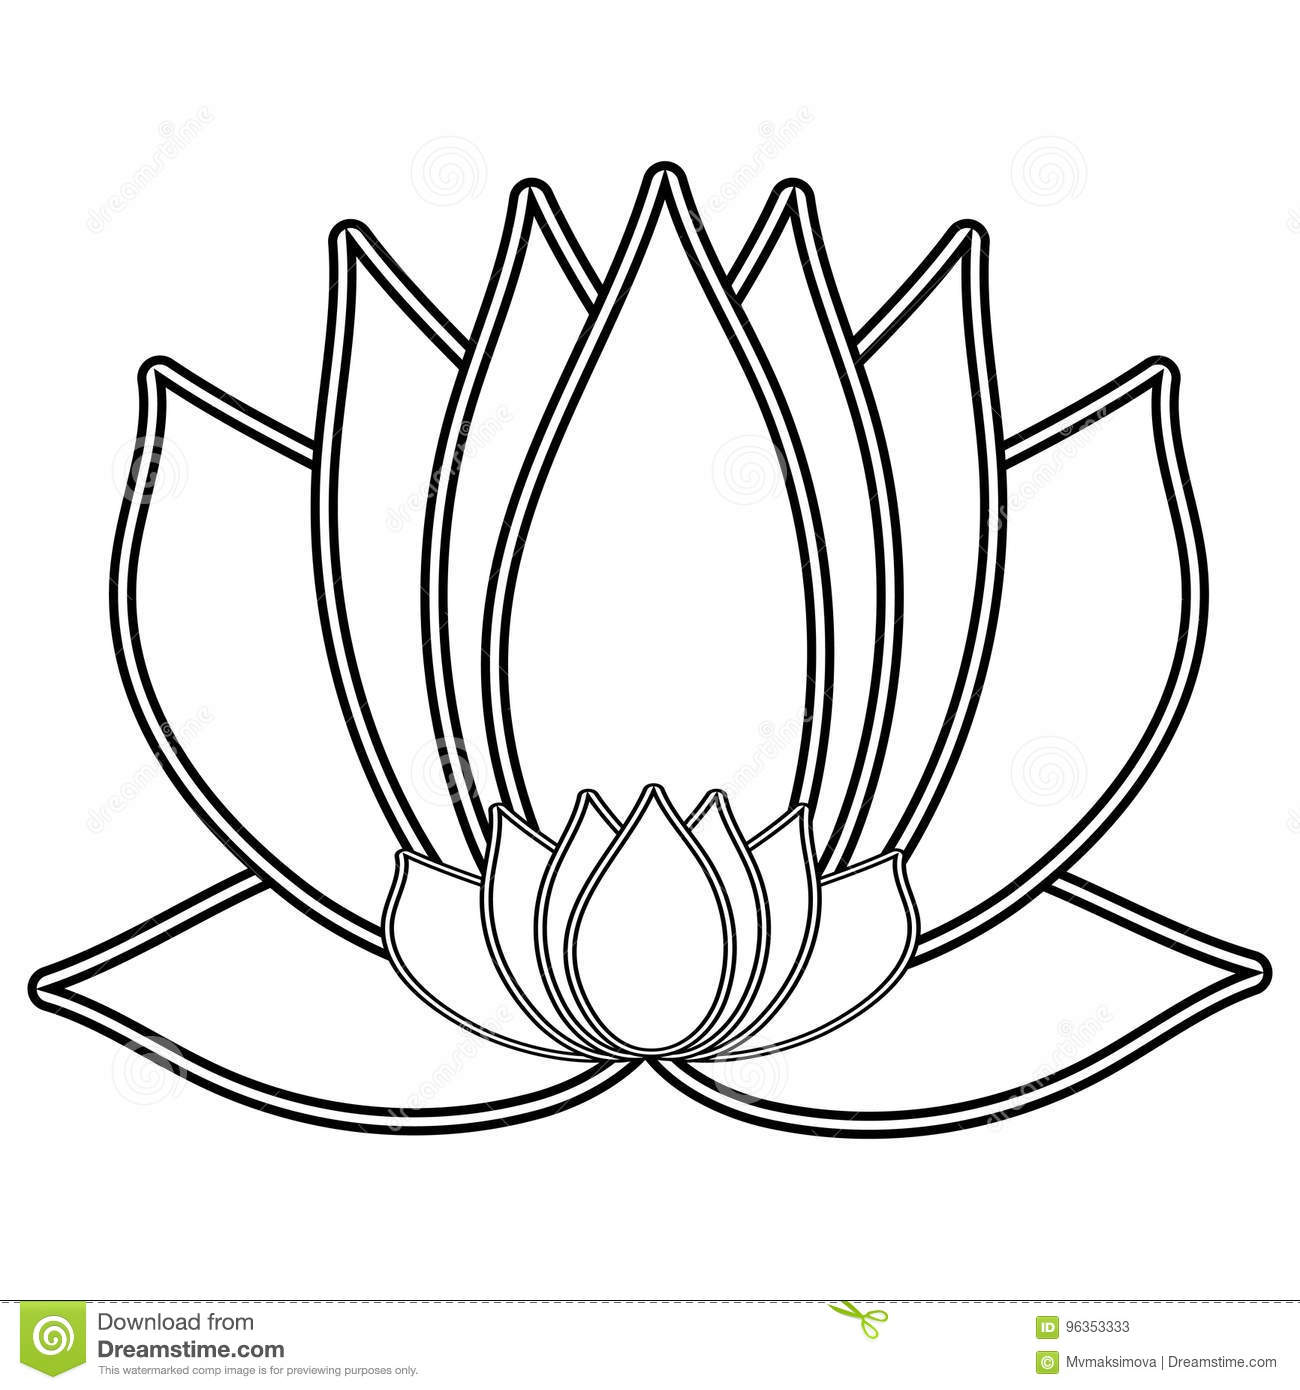 Lotus the black and white flower is a symbol of purity and download comp izmirmasajfo